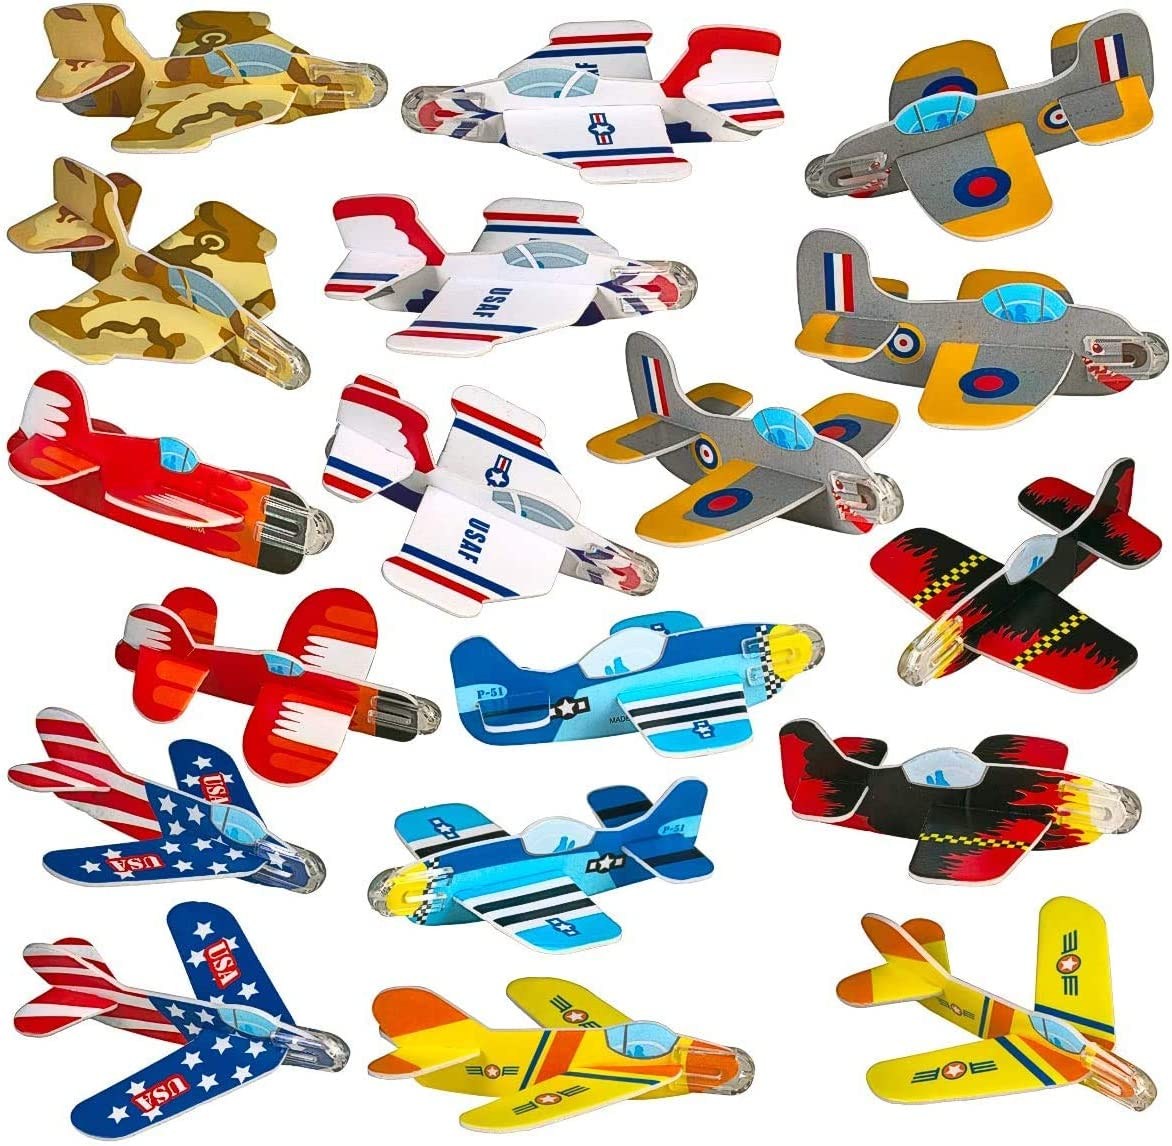 Hand Throw Glider Plane Model For Kids Children Birthday Party Favors blue 1PCS 15inch Foam Airplane Toys